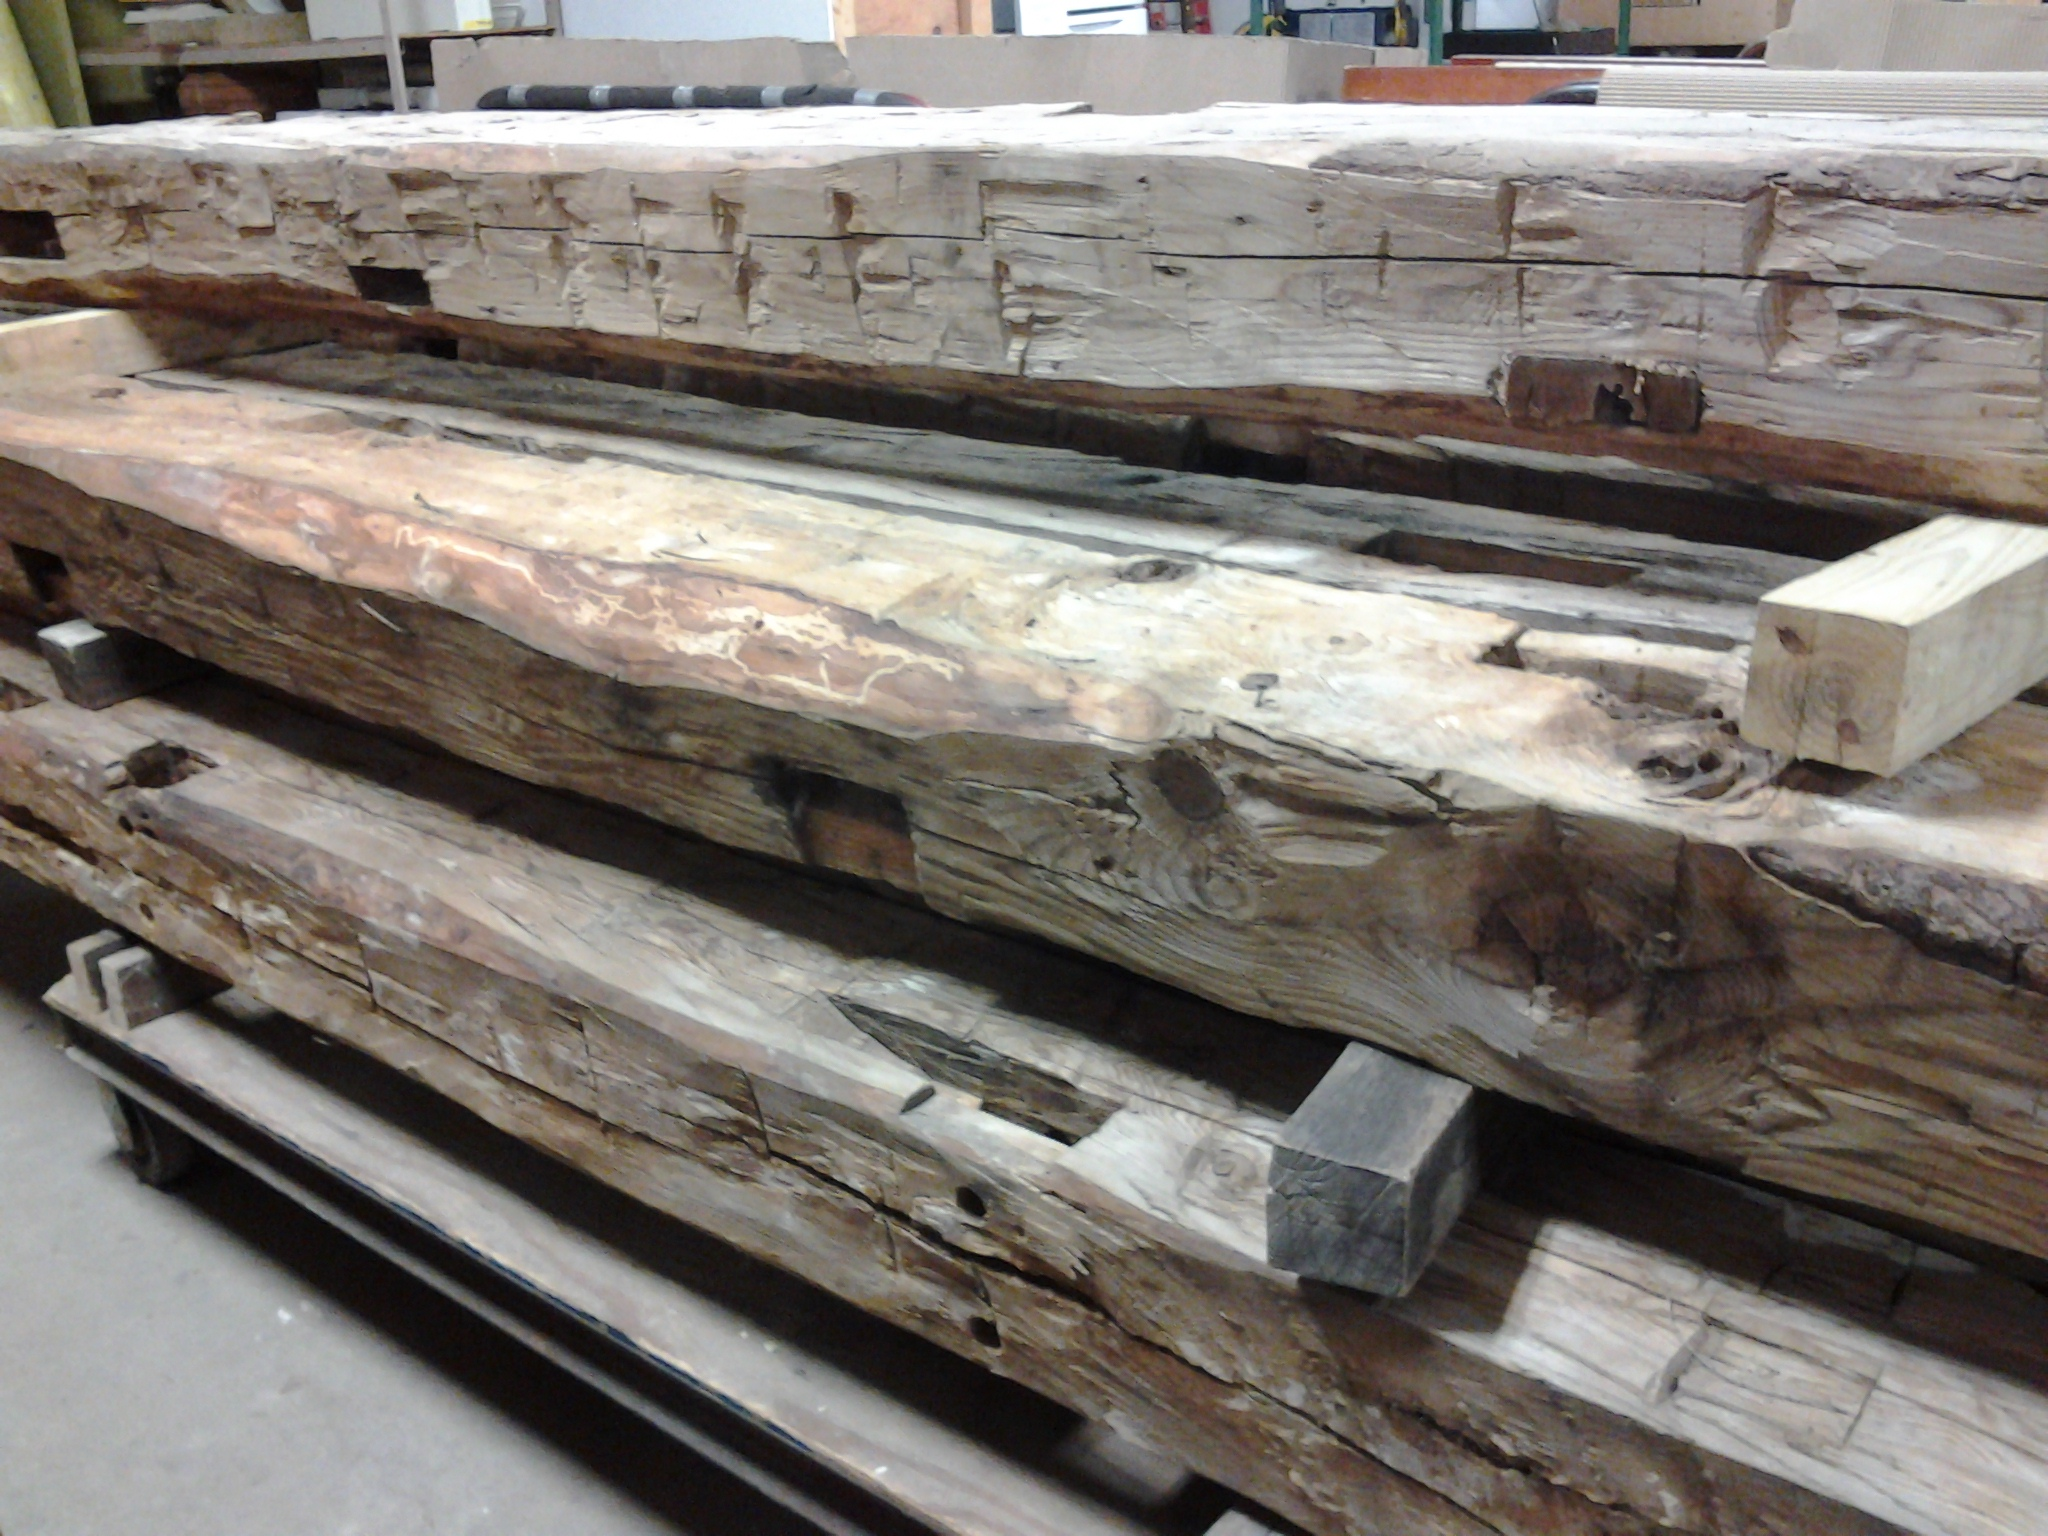 Fireplace Beams Hand Hewn Rough Sawn Barn Beams Out Of Stock Odom Reuse